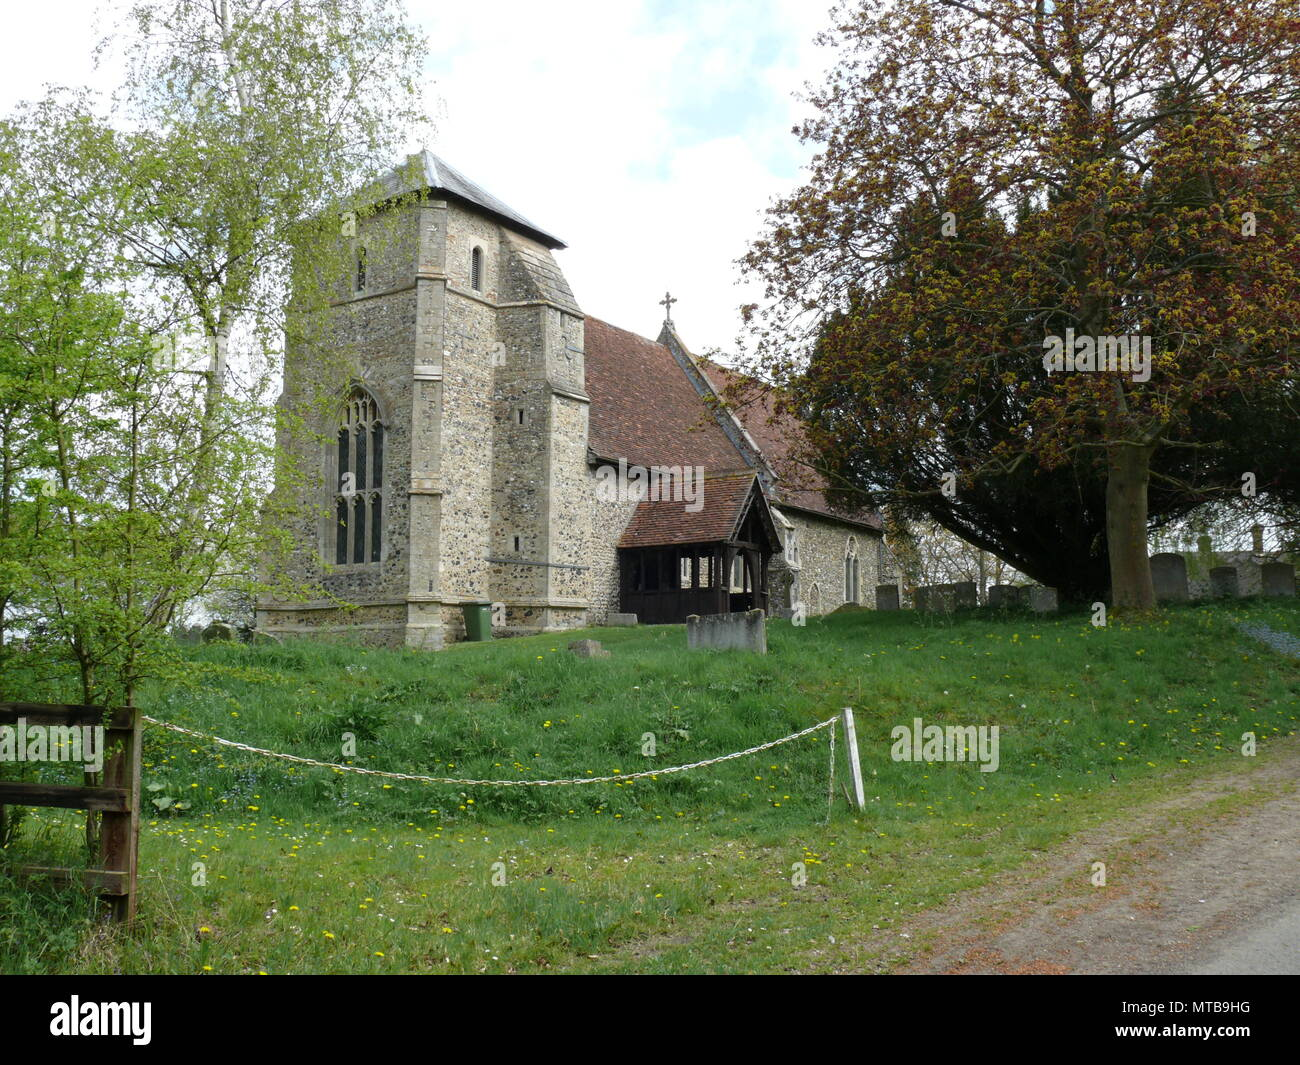 Rural Church in Suffolk, England, between Bury St Edmunds and Lavenham - Stock Image